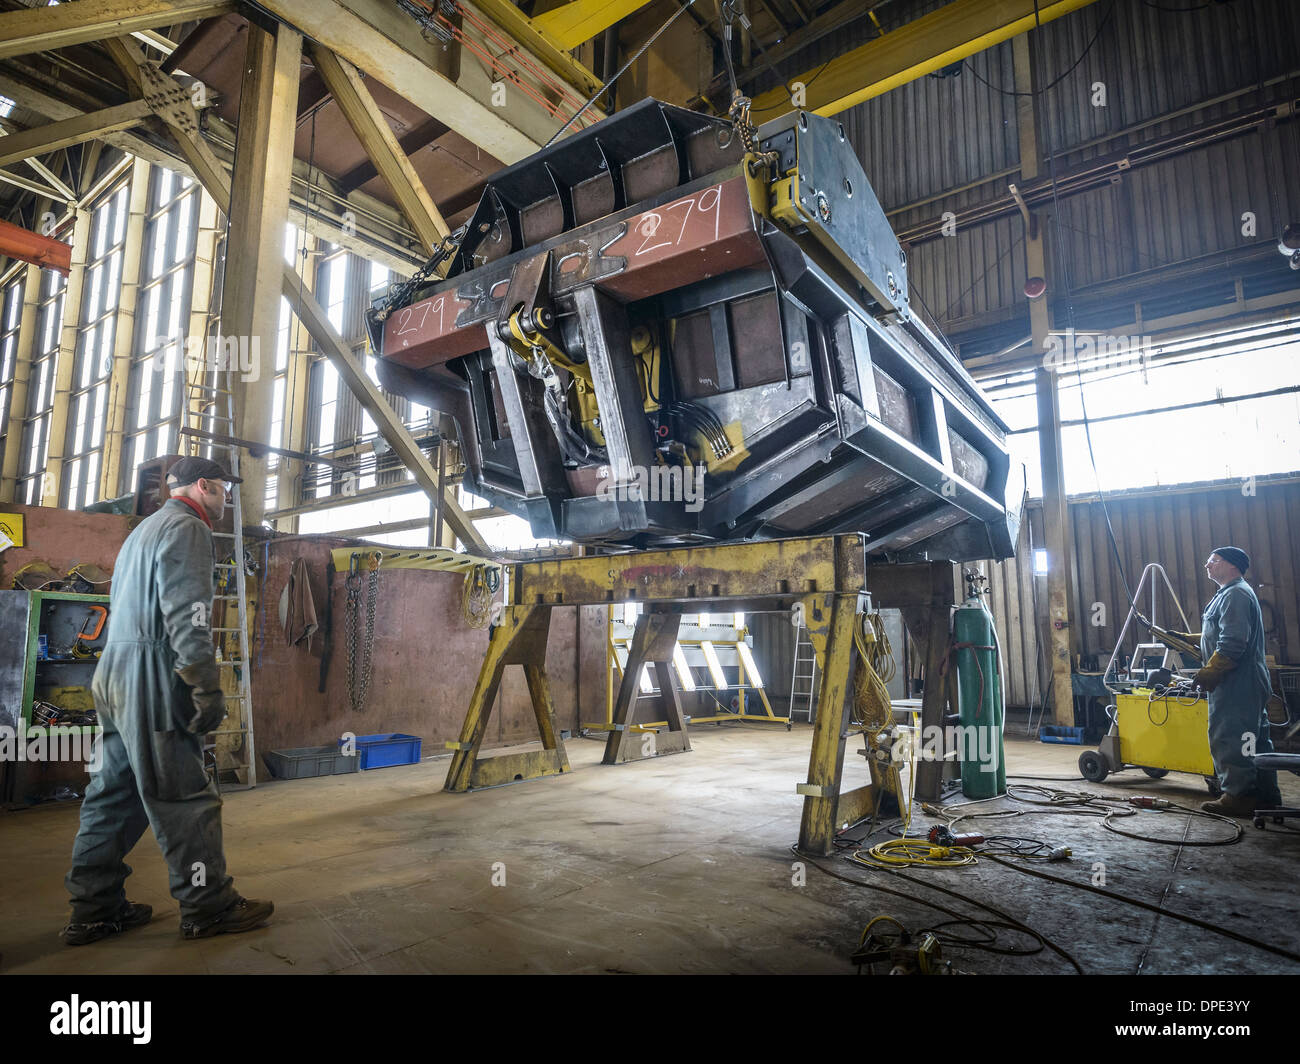 Engineers working on steel part in factory Stock Photo